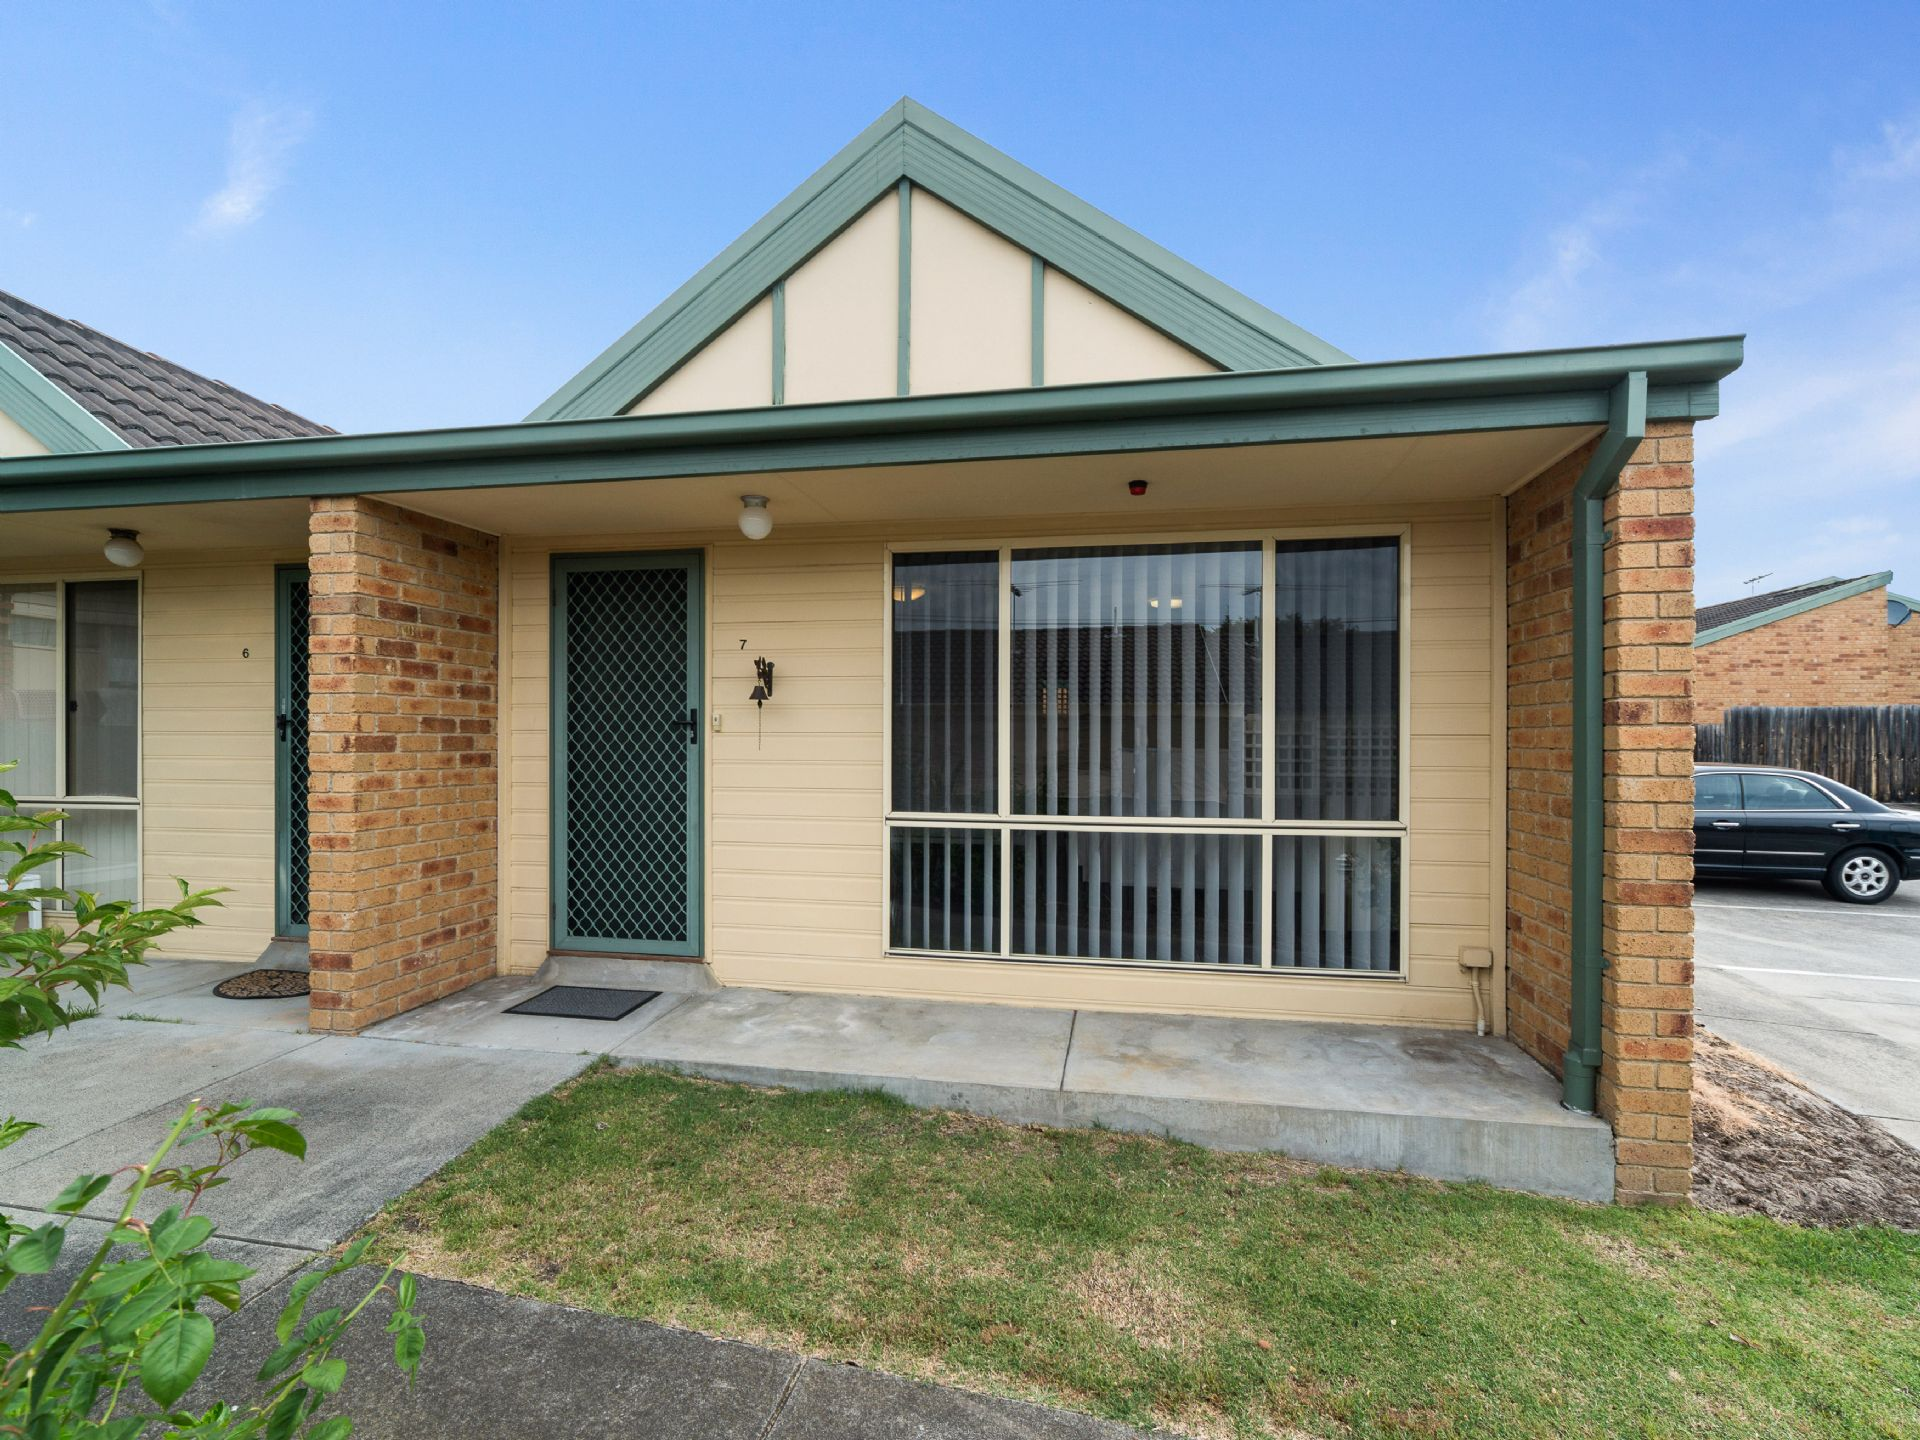 7/18 Reservoir Road, FRANKSTON, VIC, 3199 - Image